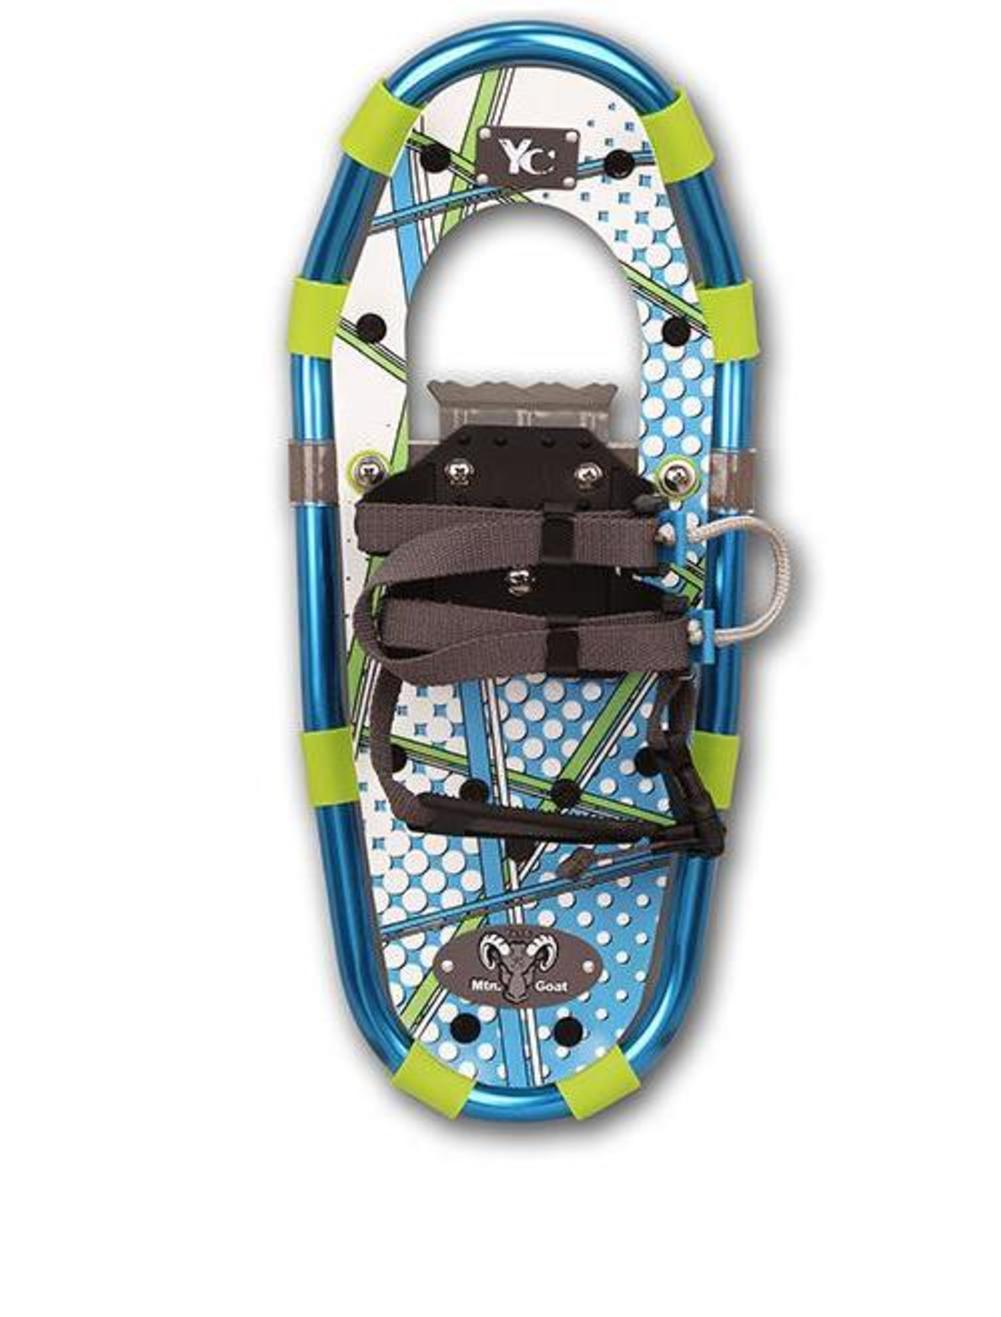 Yukon Charlies Jr. Series Aluminum Youth Snowshoes by Yukon Charlies